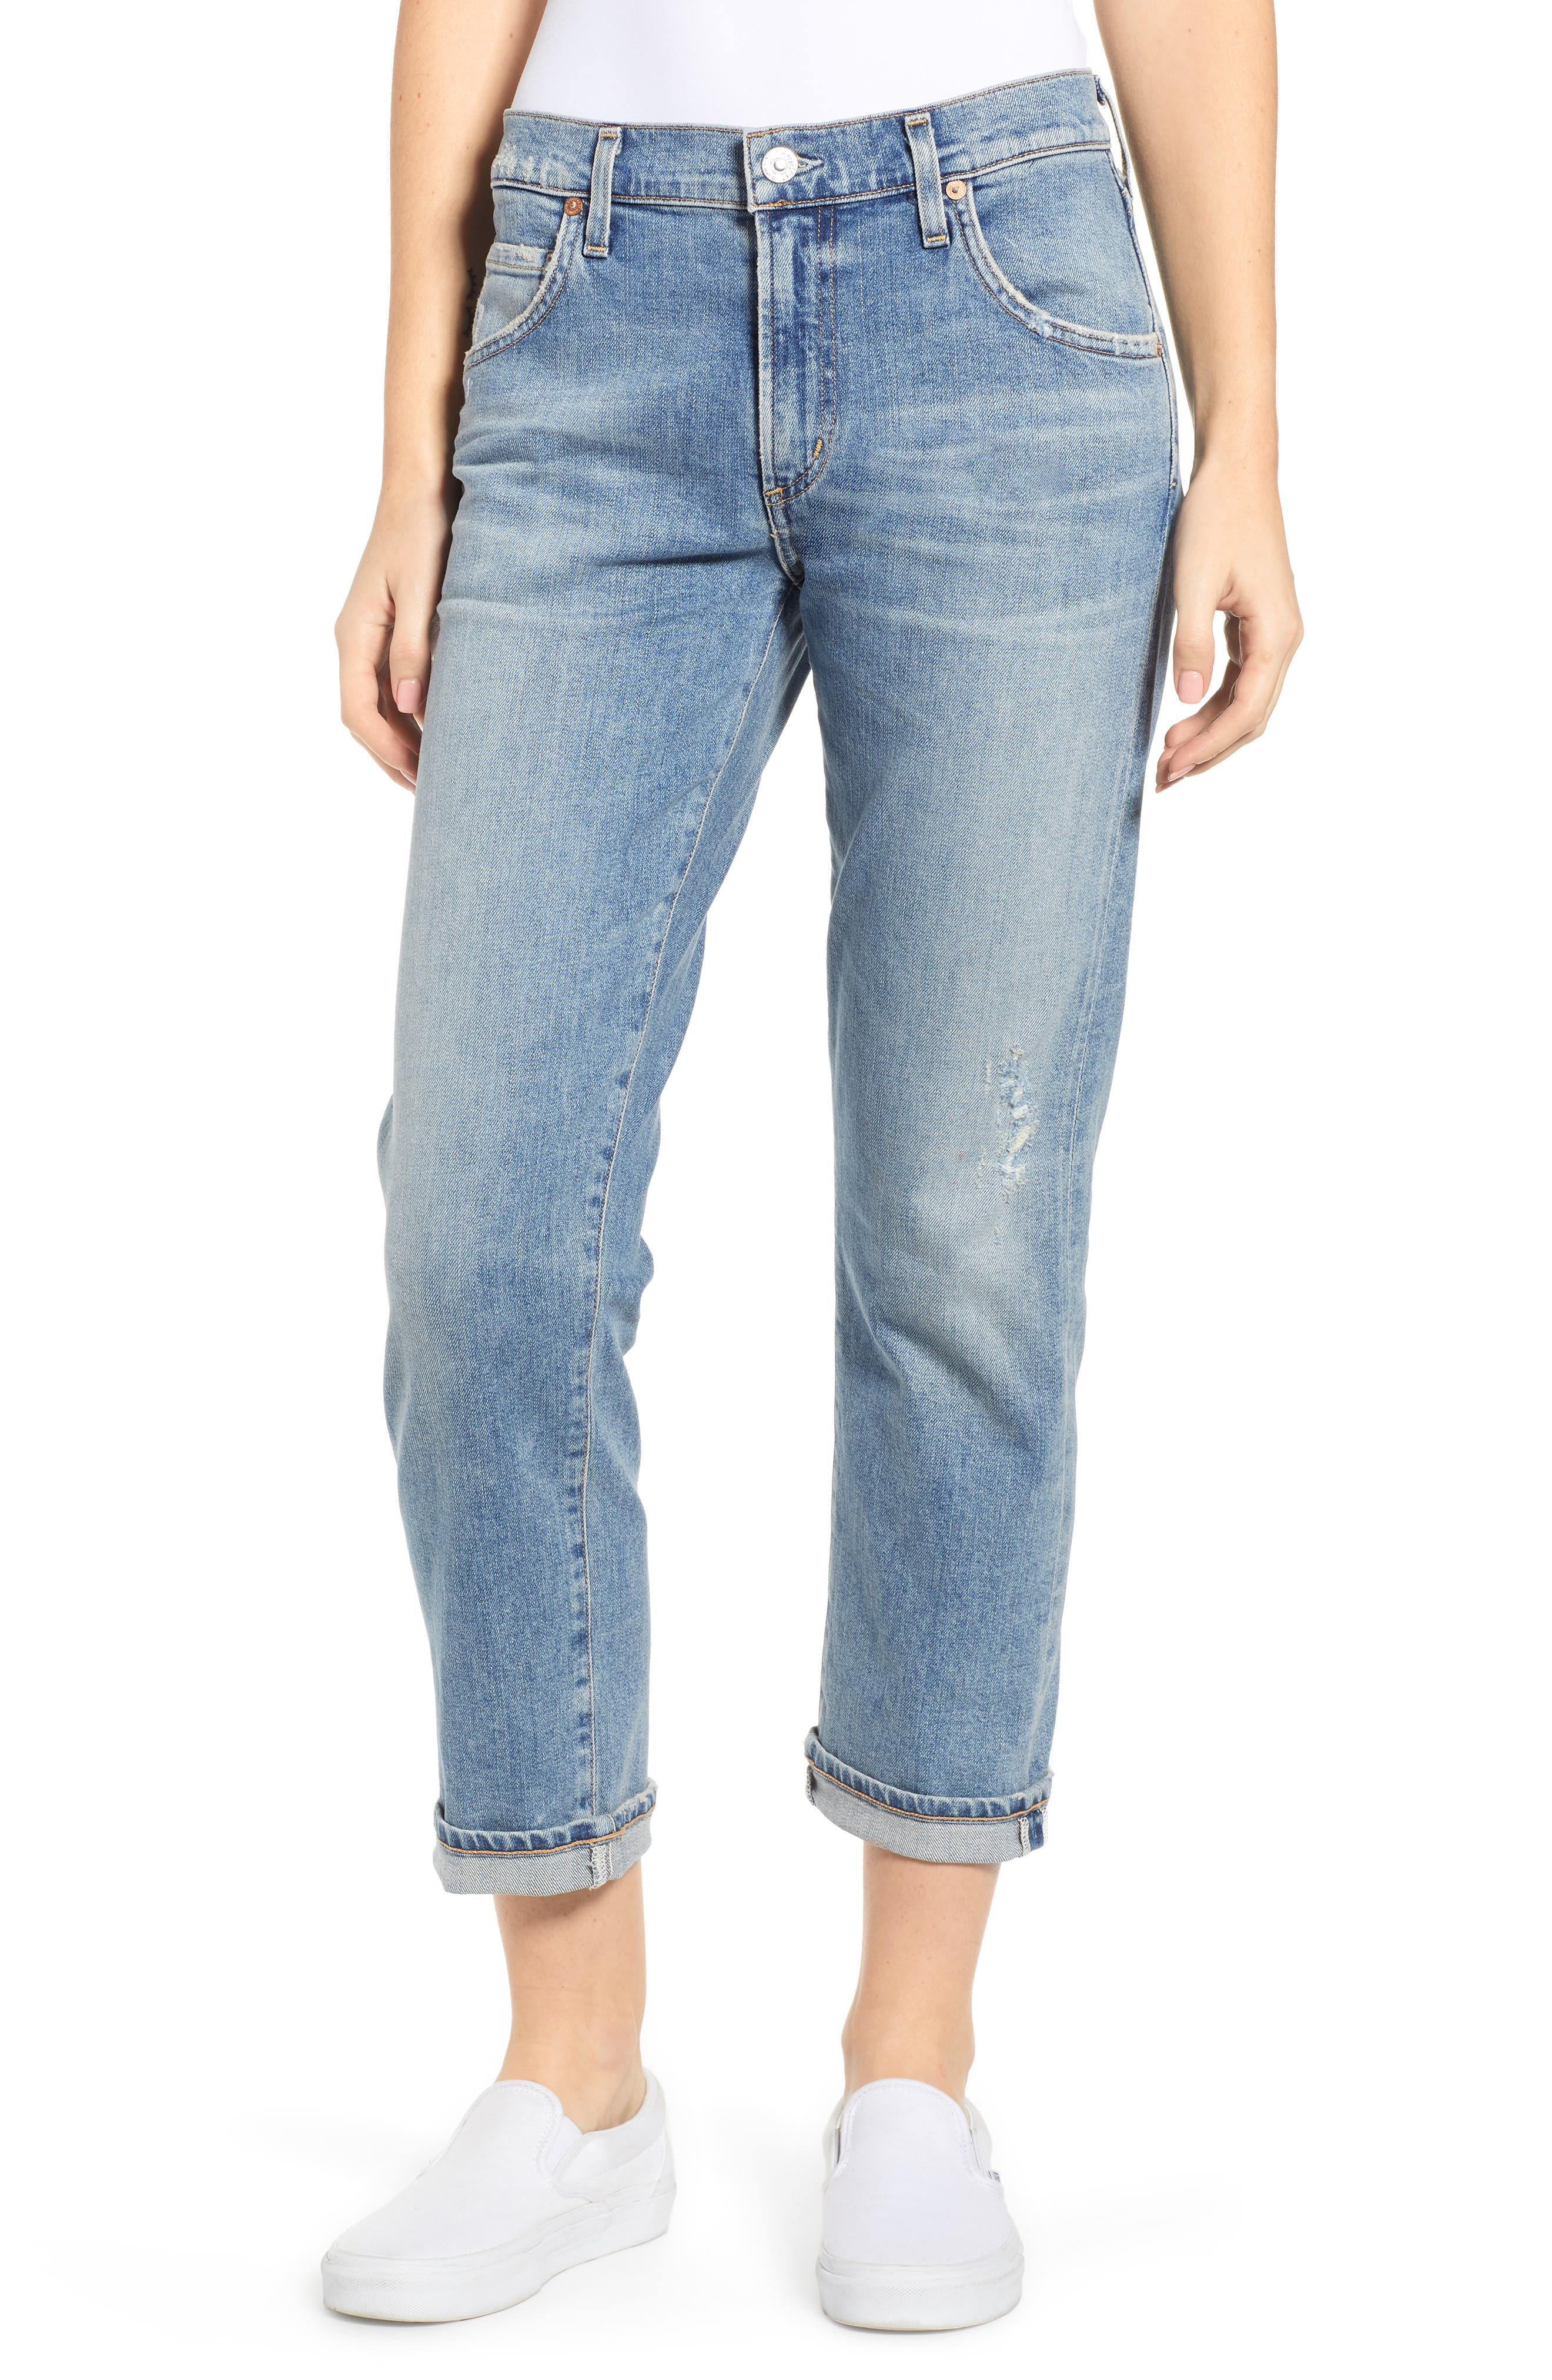 CITIZENS OF HUMANITY, Emerson Crop Slim Fit Boyfriend Jeans, Main thumbnail 1, color, MARINA